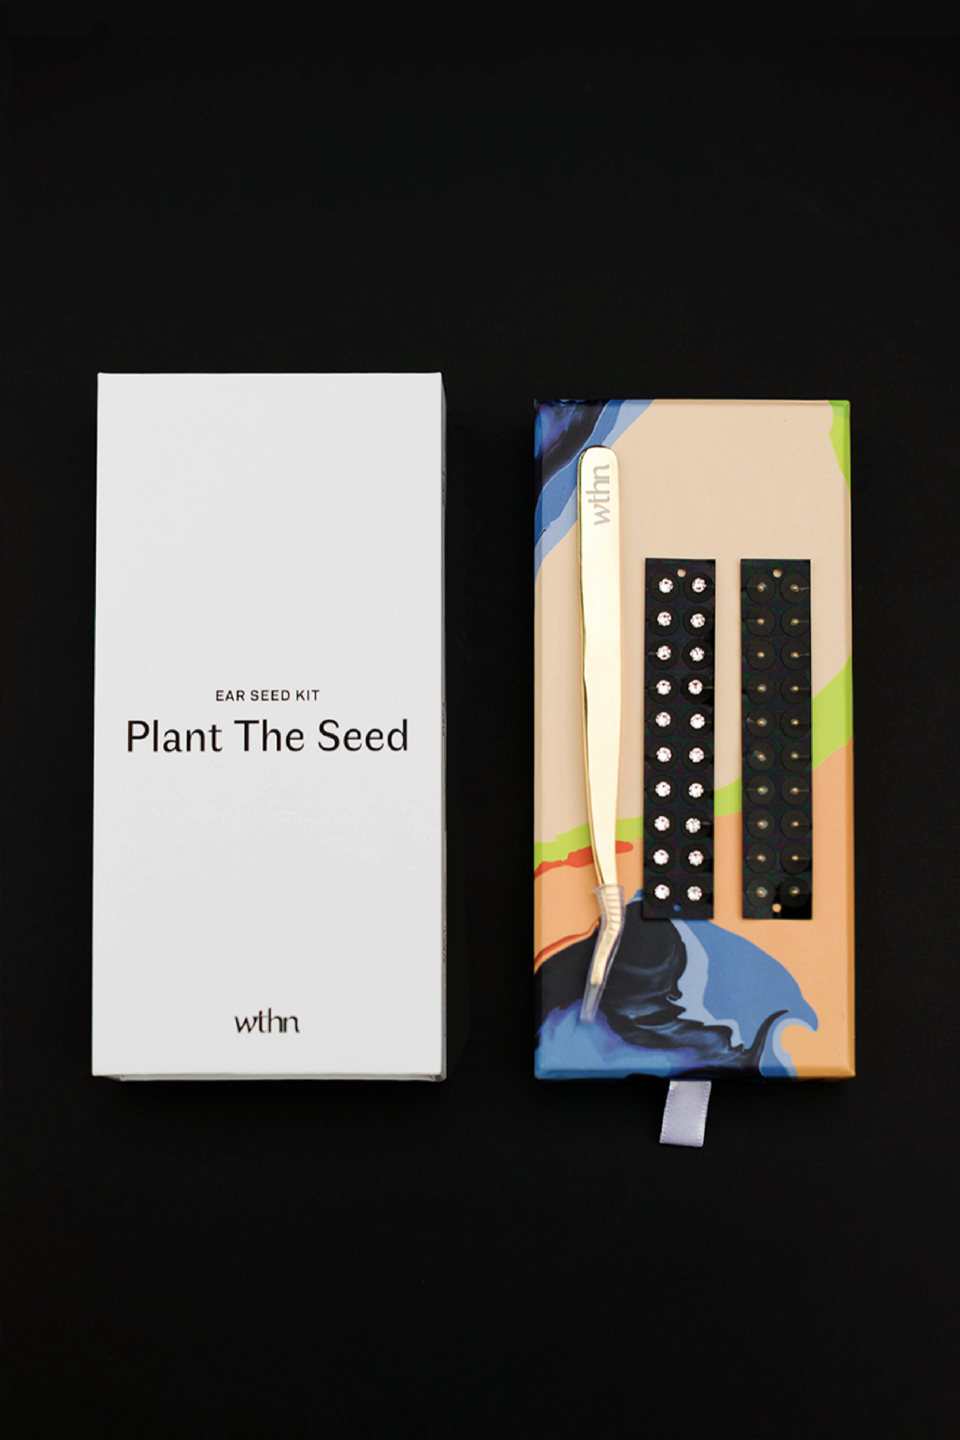 wthn ear seeds kit designer branding